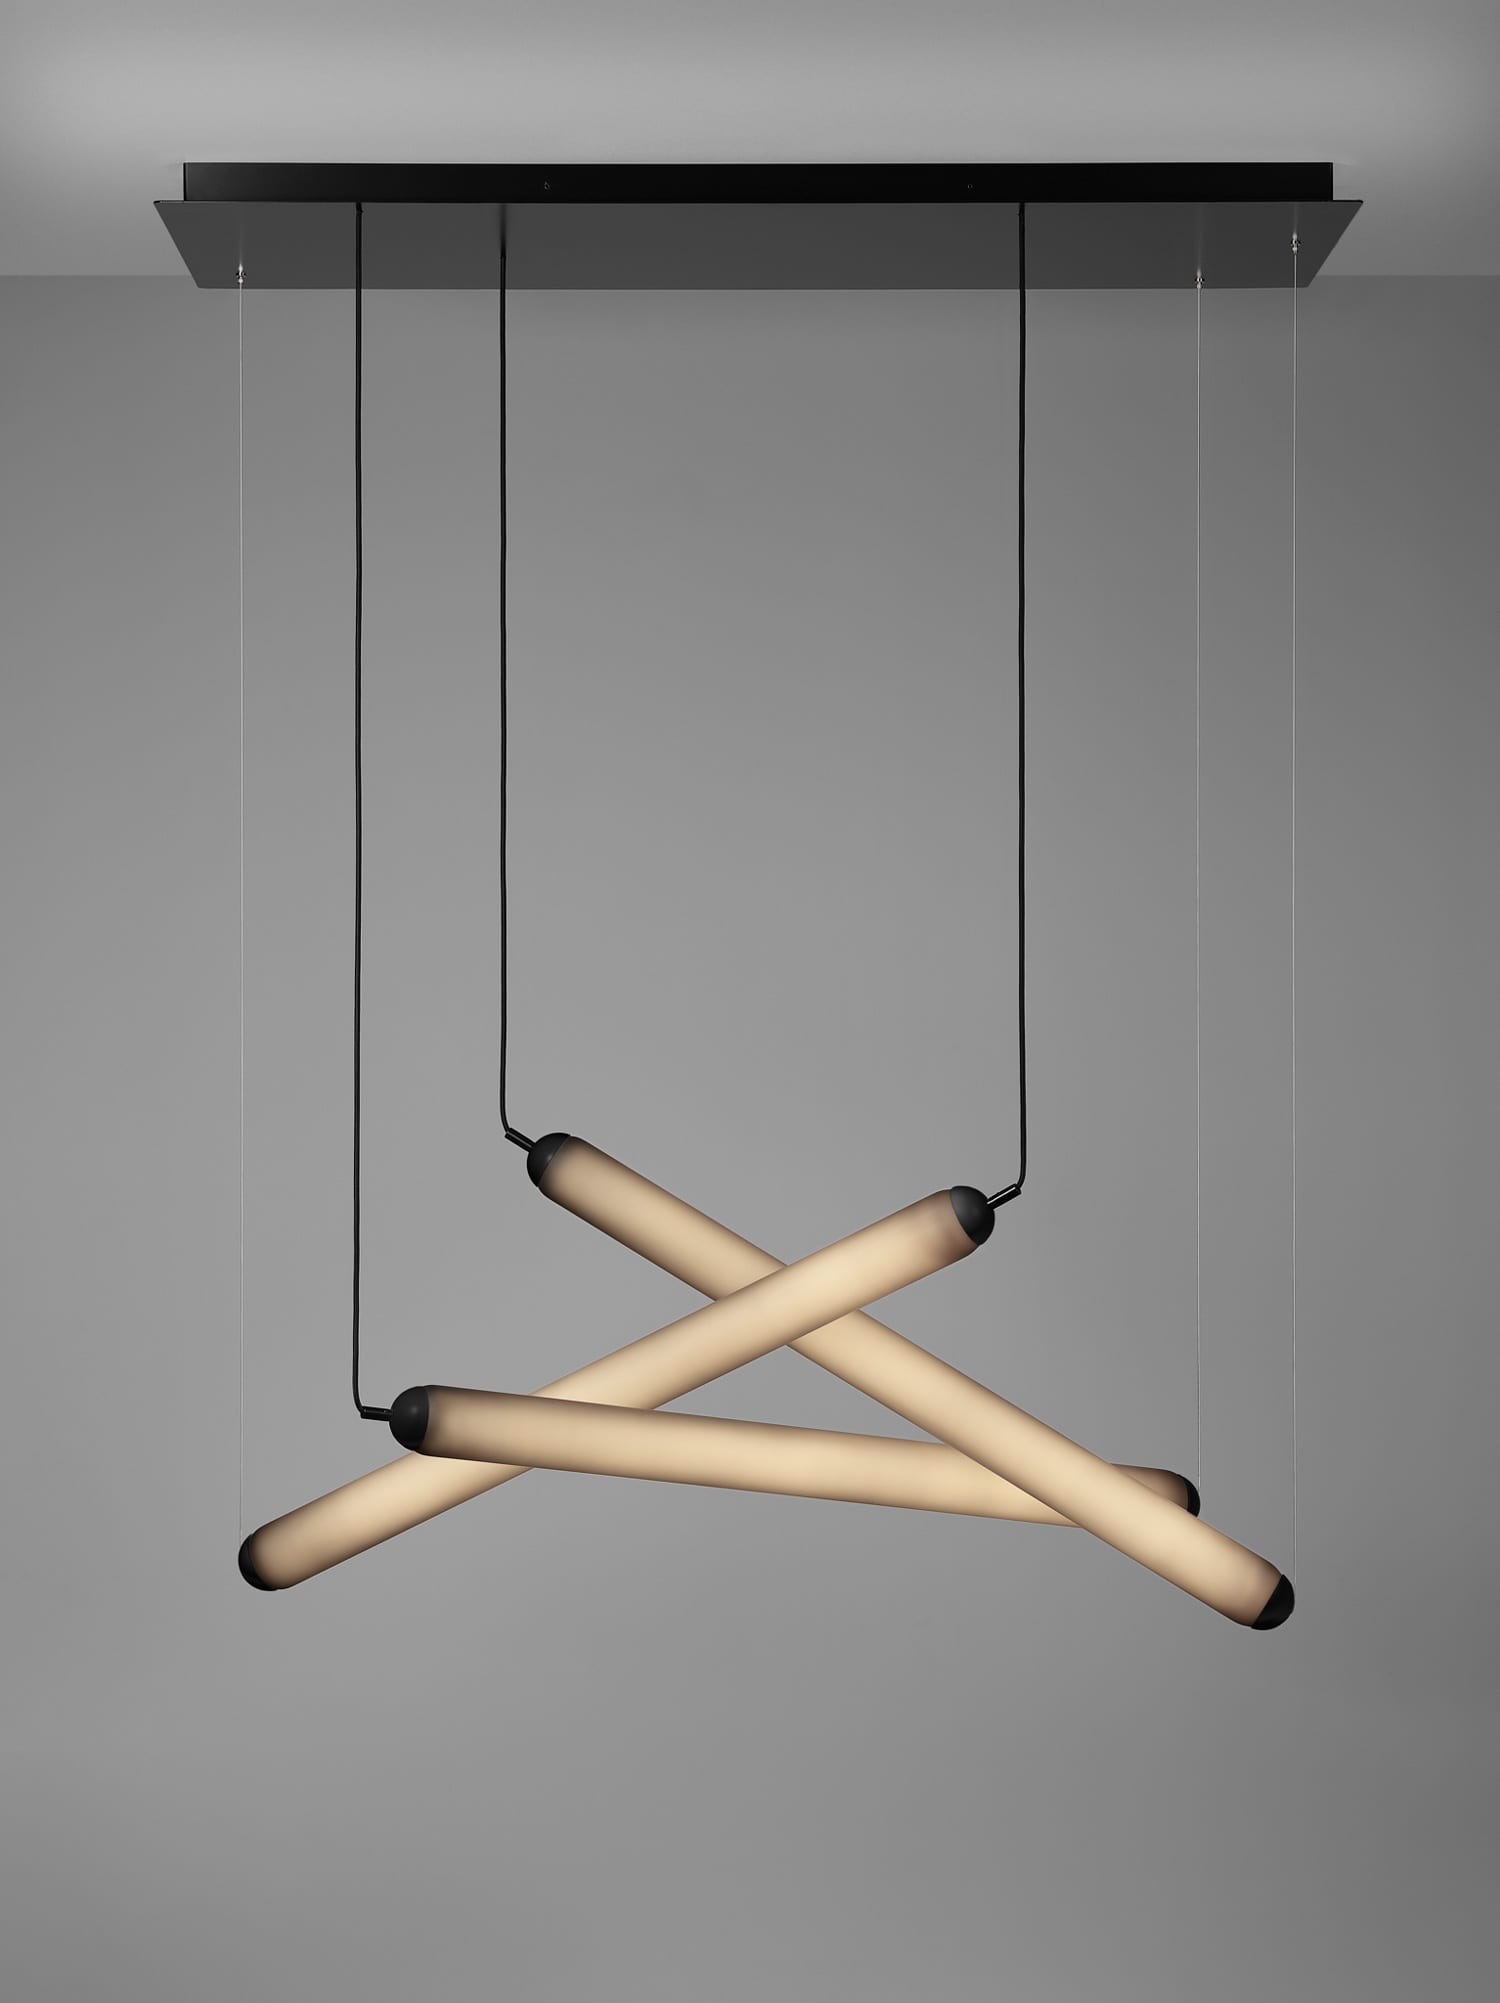 Puro Eclectic Pendant by Brokis at Maison & Objet 2019 | Yellowtrace